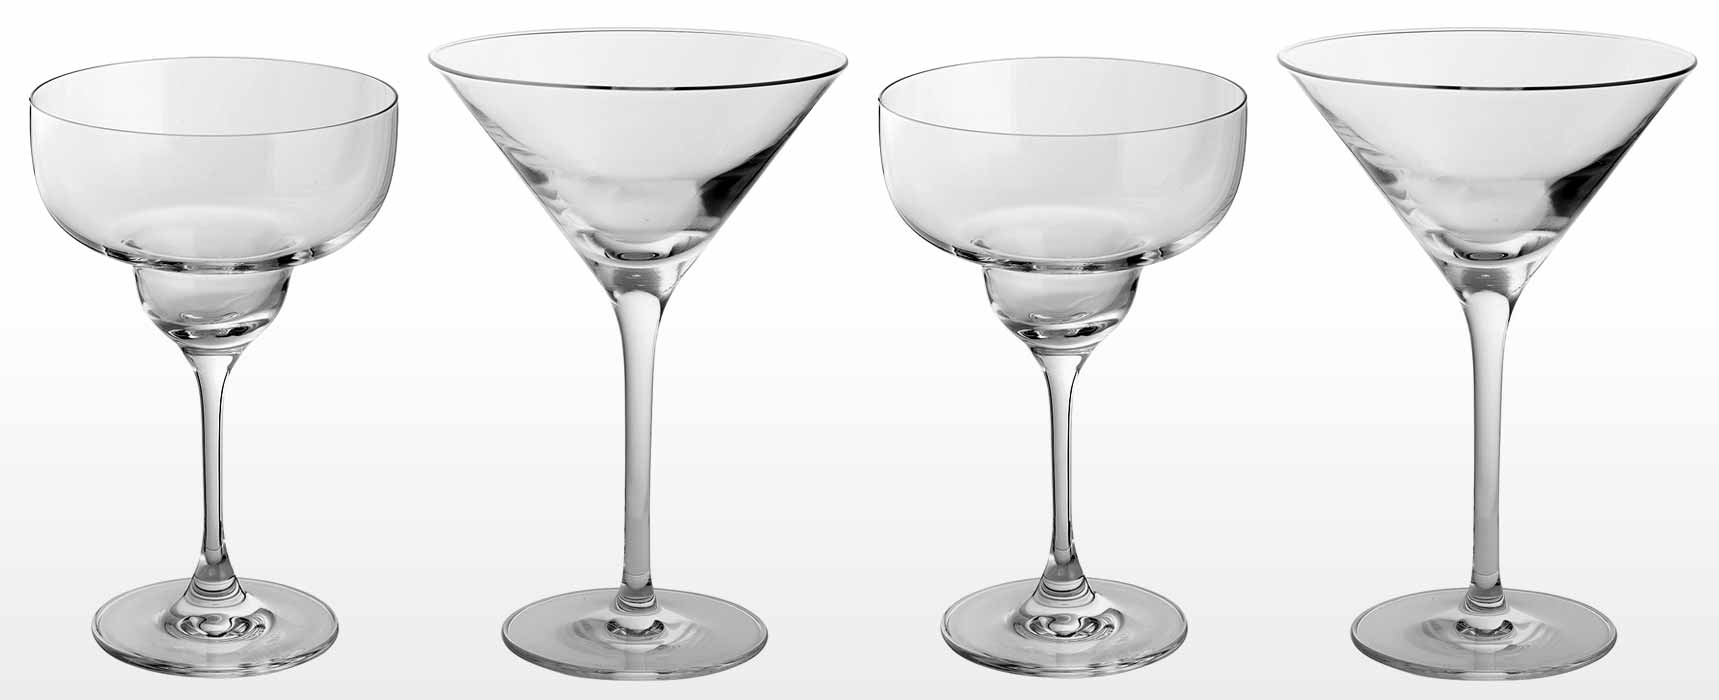 Fine Crystal and glass cocktail and gin glasses